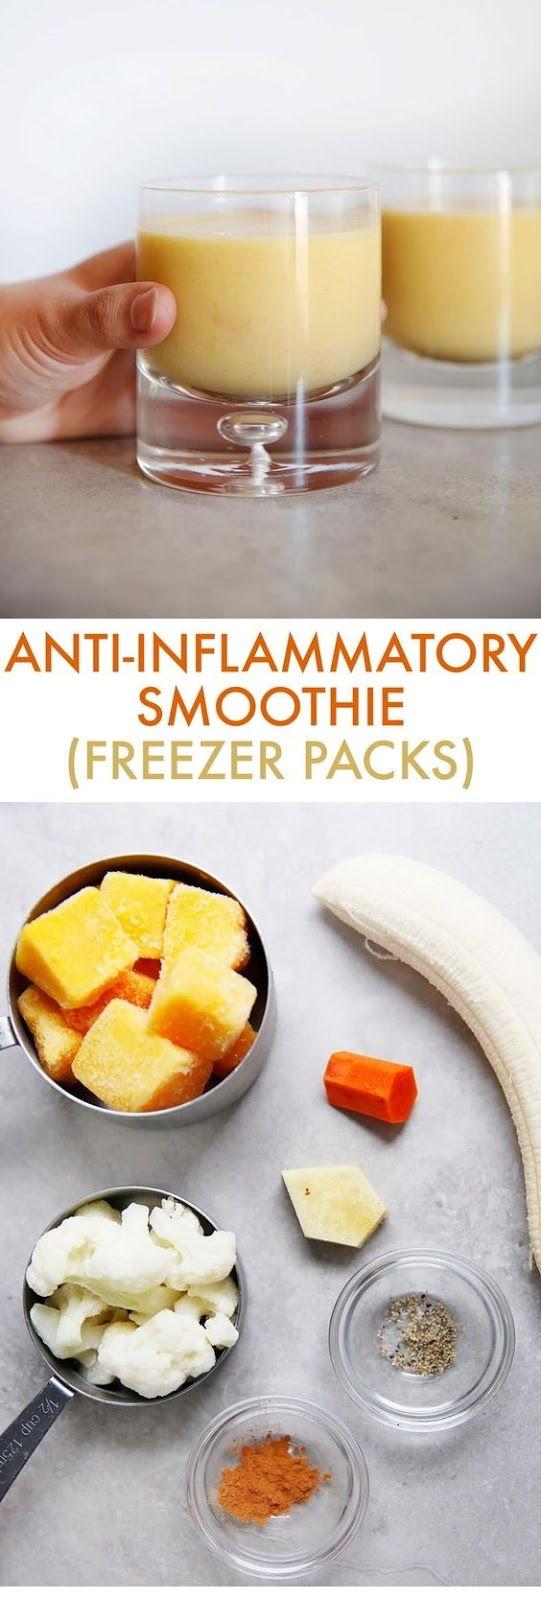 Anti-Inflammatory Smoothie Freezer Pack